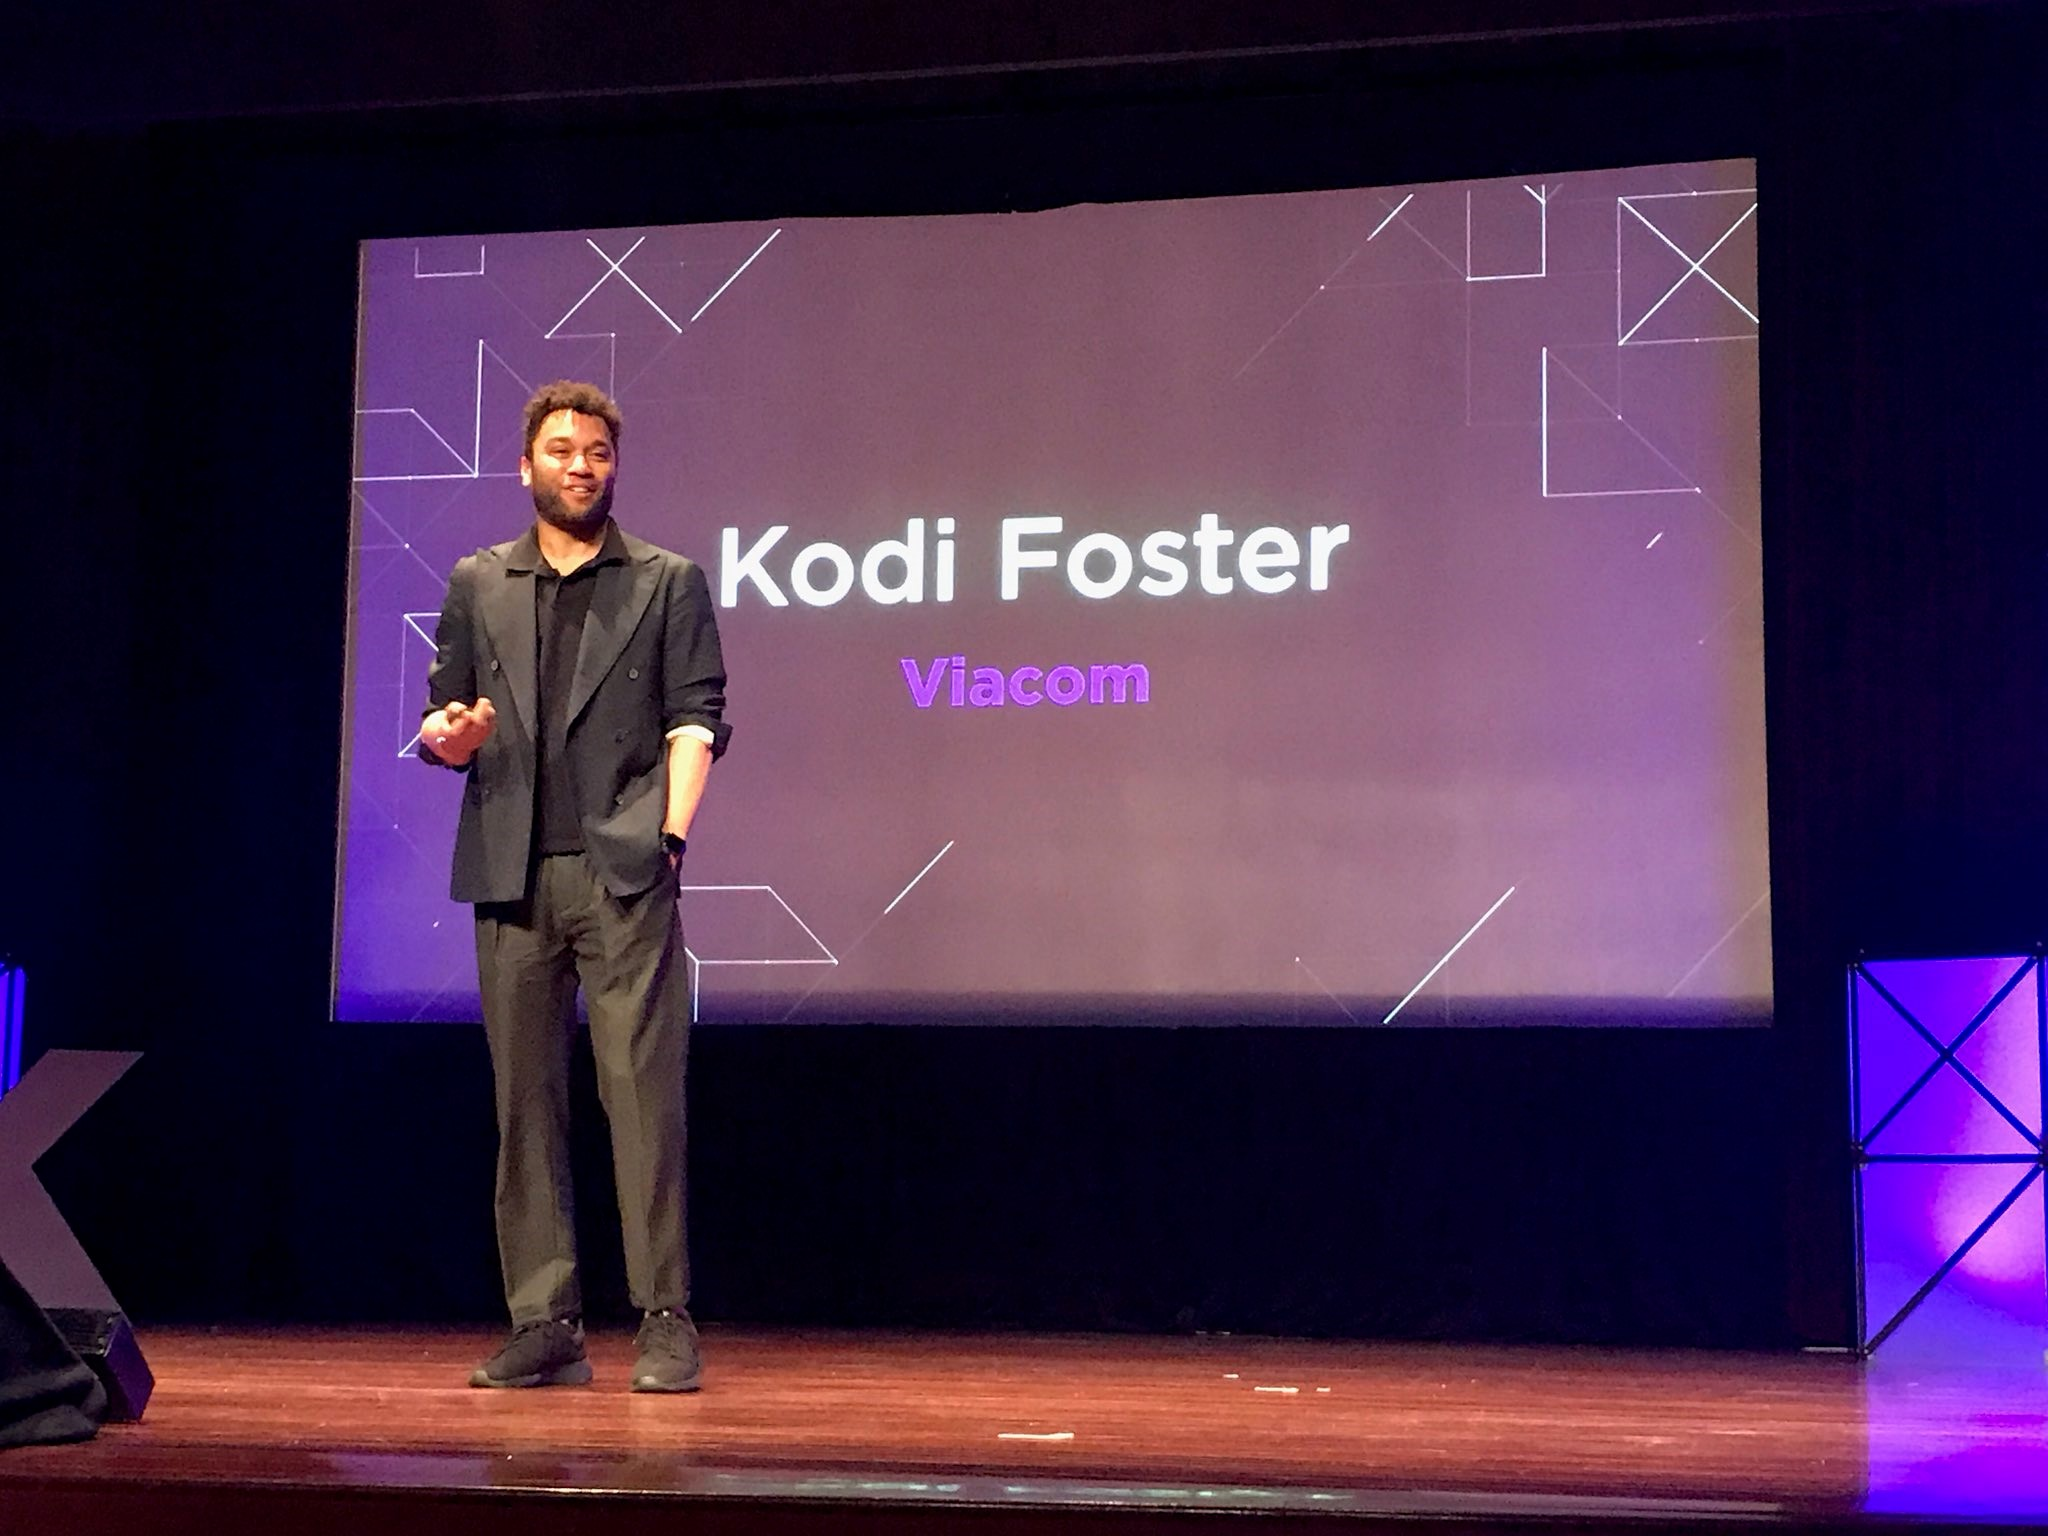 Cover image for  article: Viacom's Kodi Foster Warns of Living in a Data Echo Chamber